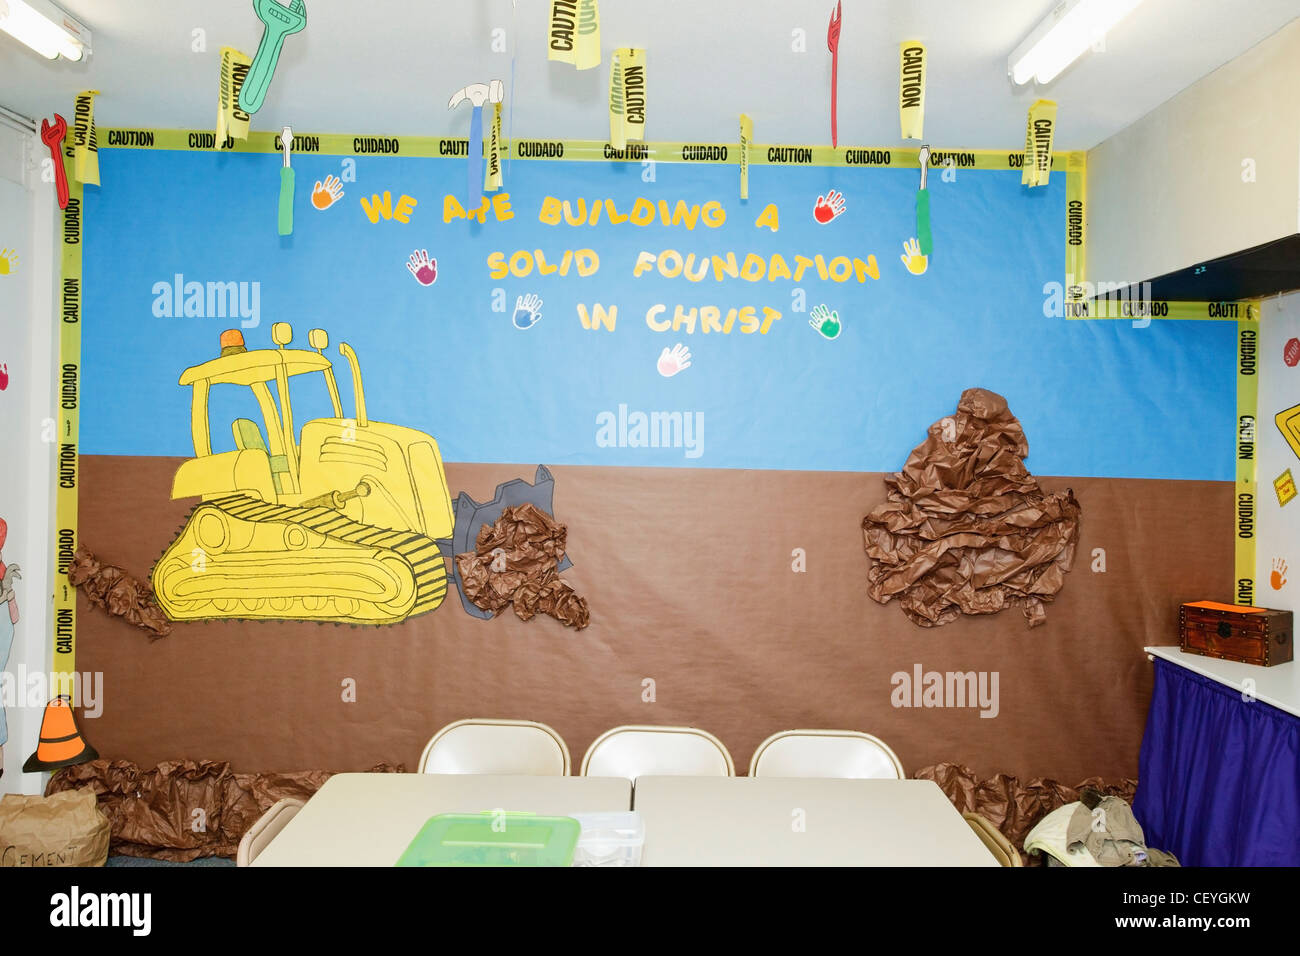 a construction illustration on a sunday school classroom wall; portland oregon united states of america - Stock Image